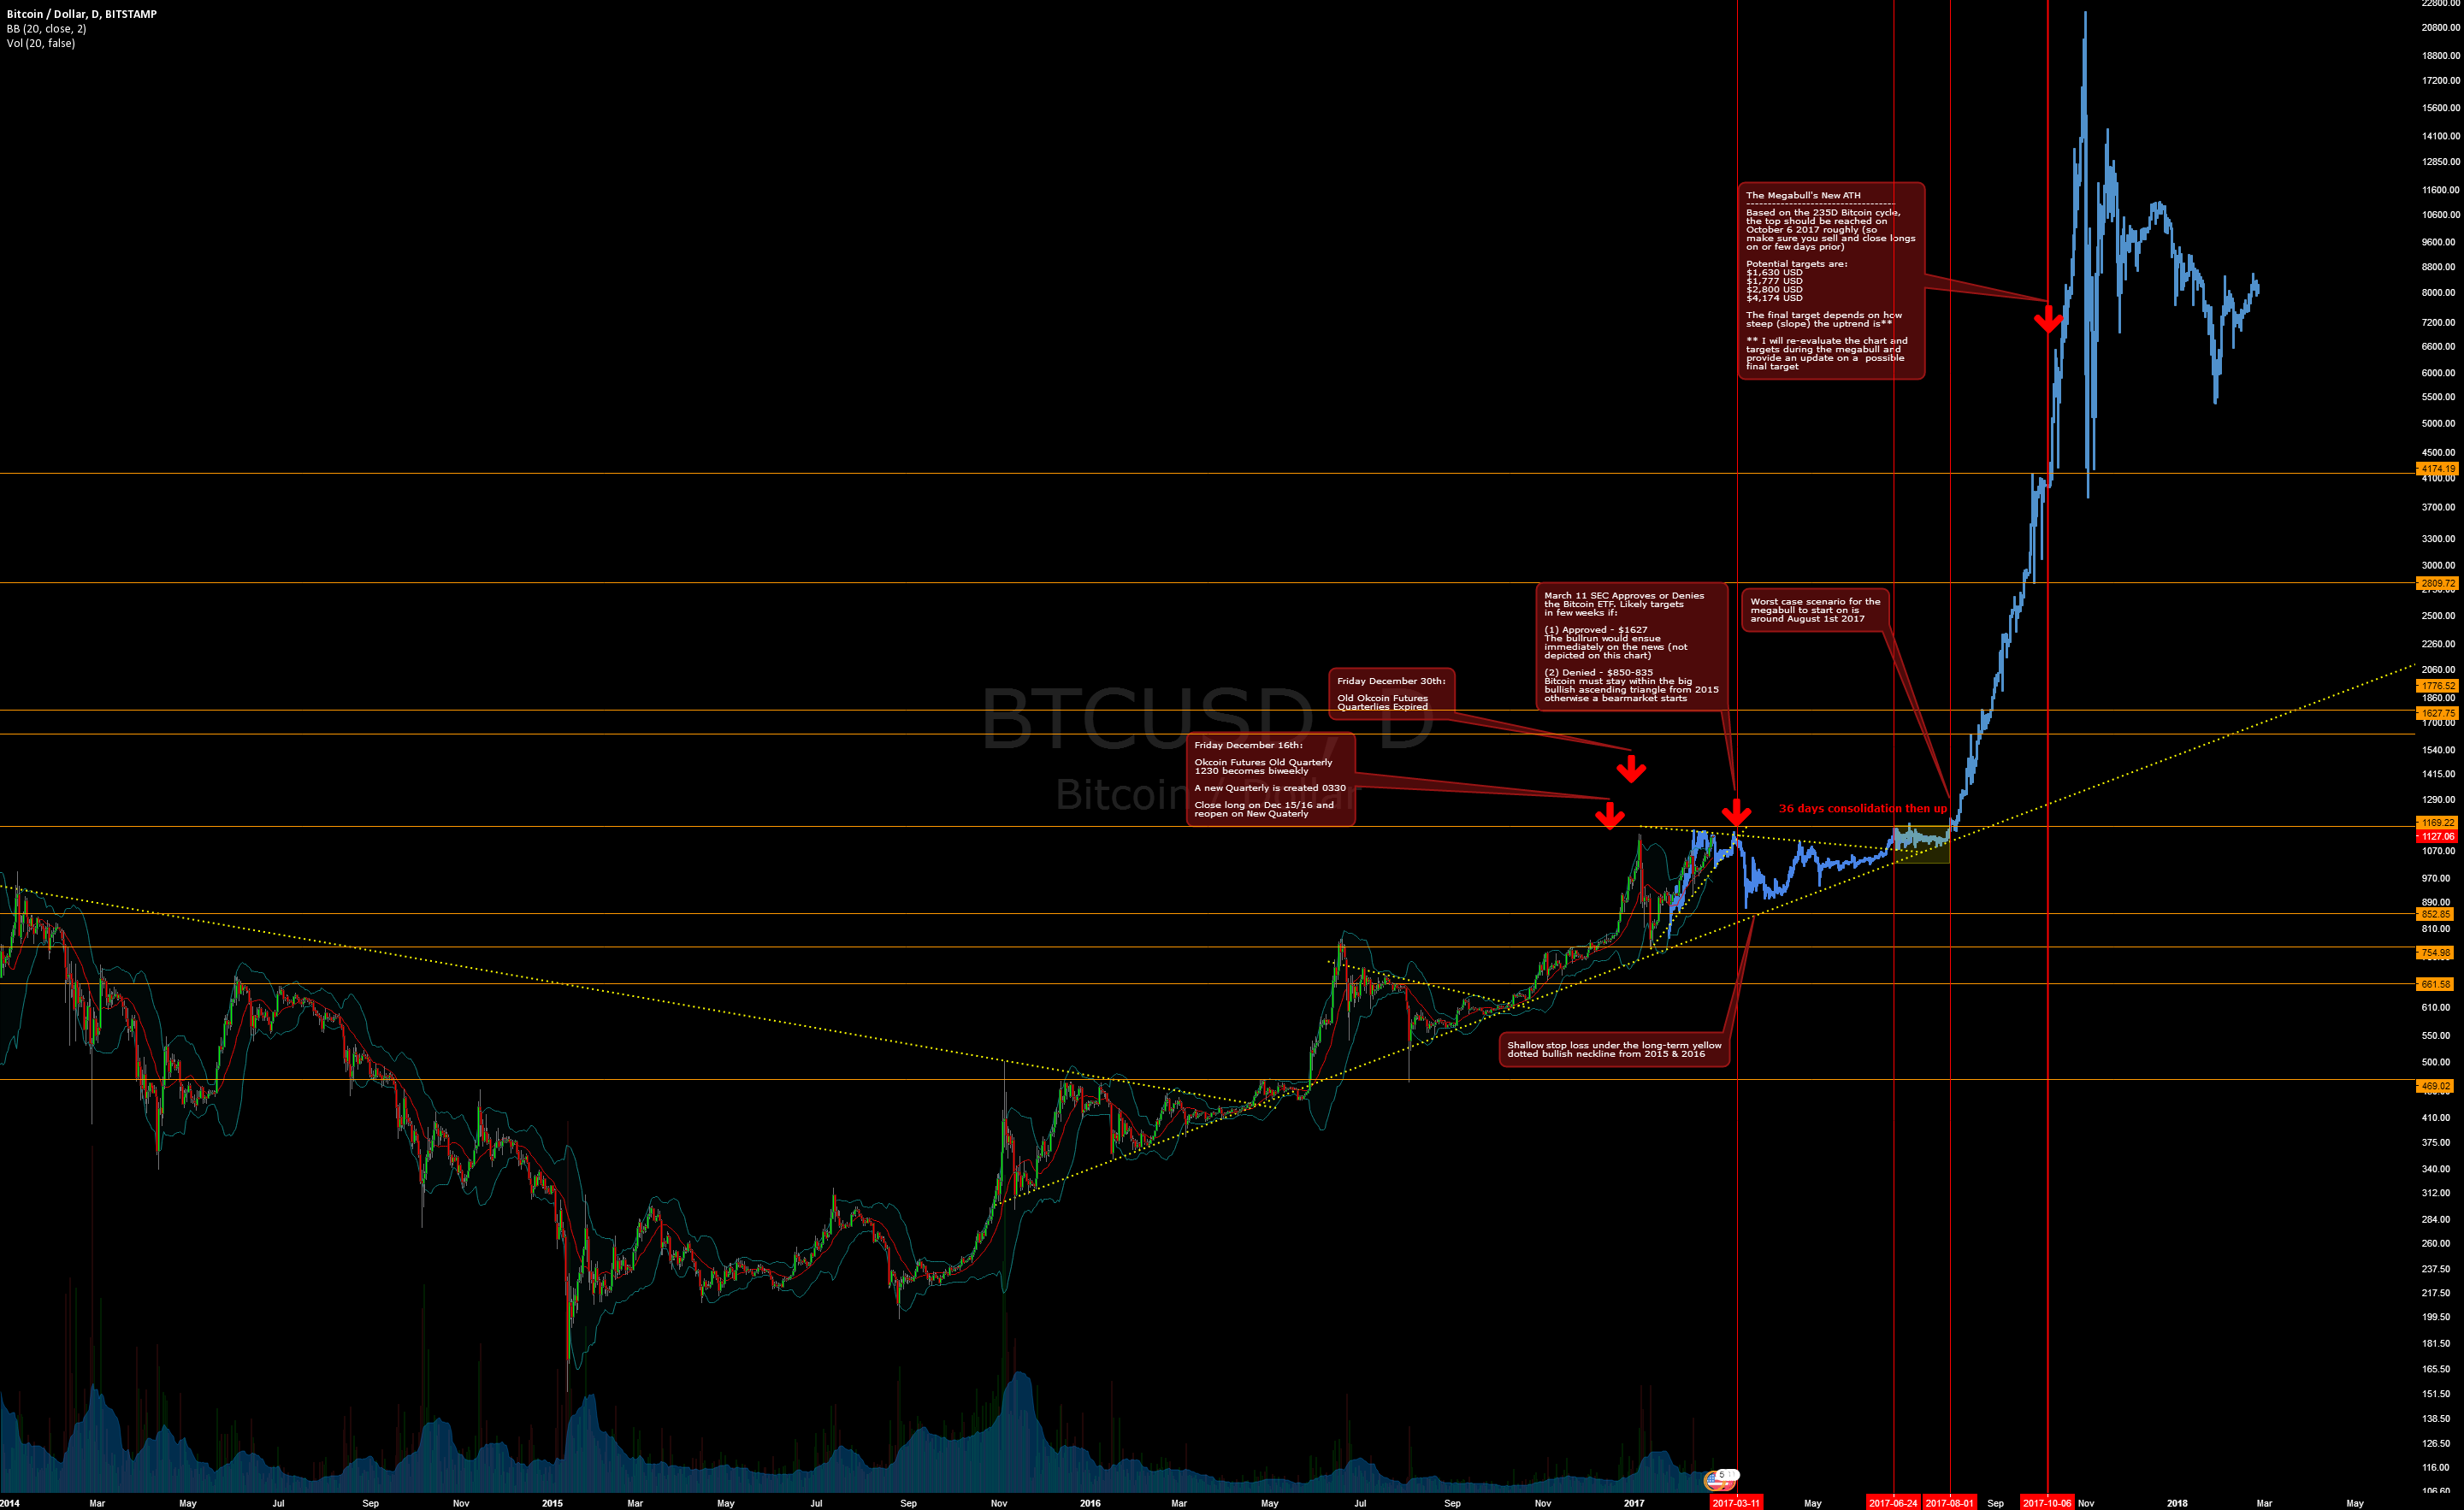 Potential Next Bitcoin Megabull Cycle - August 2017